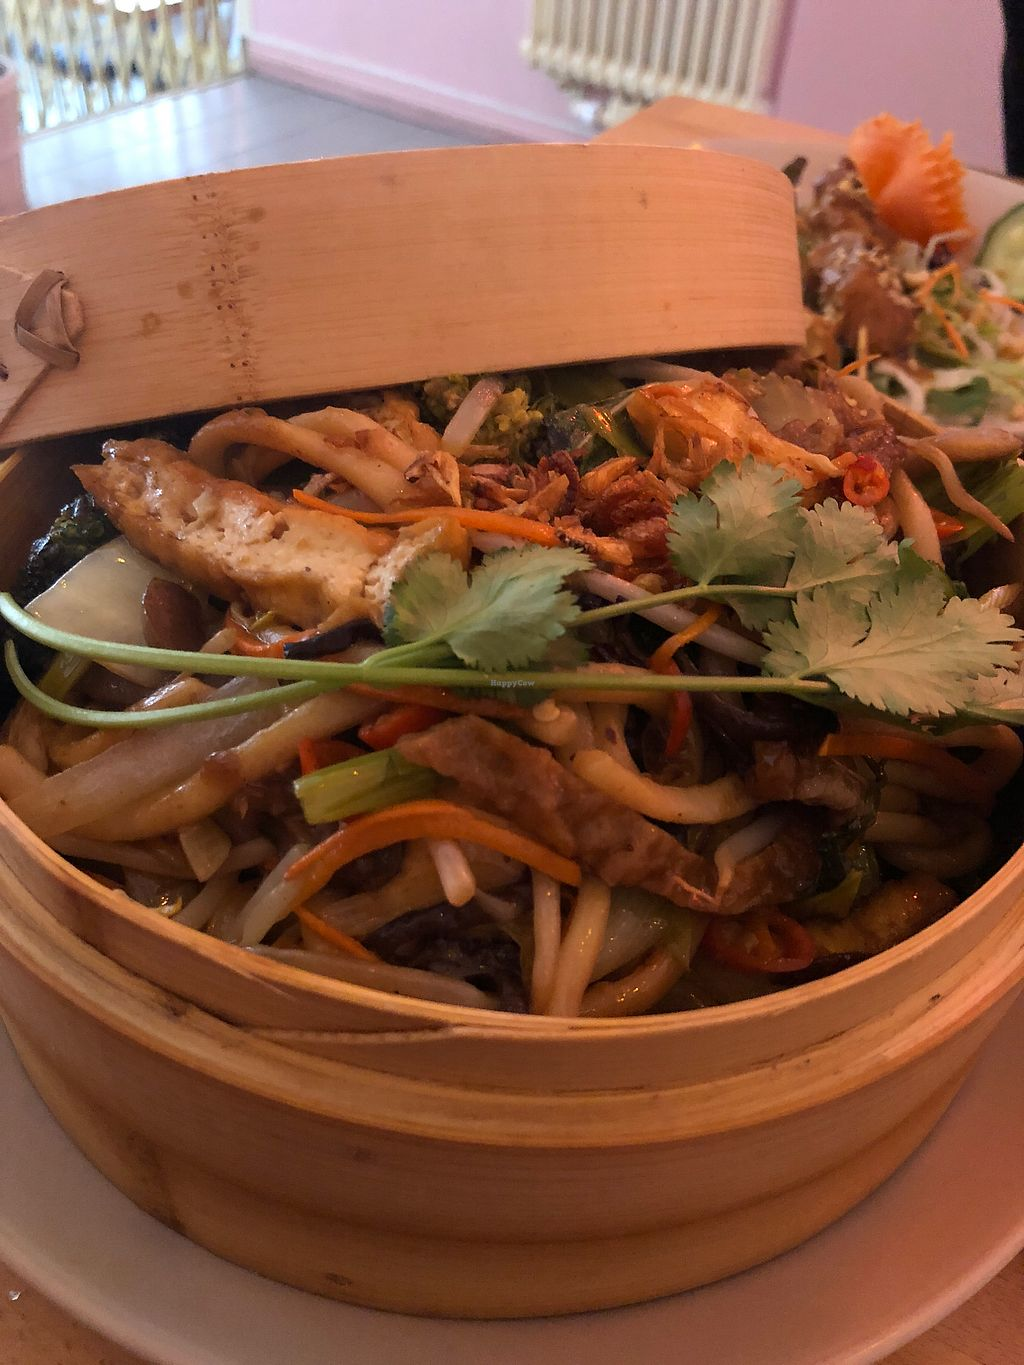 """Photo of +84 Asian Restaurant  by <a href=""""/members/profile/Samza"""">Samza</a> <br/>Yummy <br/> April 1, 2018  - <a href='/contact/abuse/image/96619/379364'>Report</a>"""